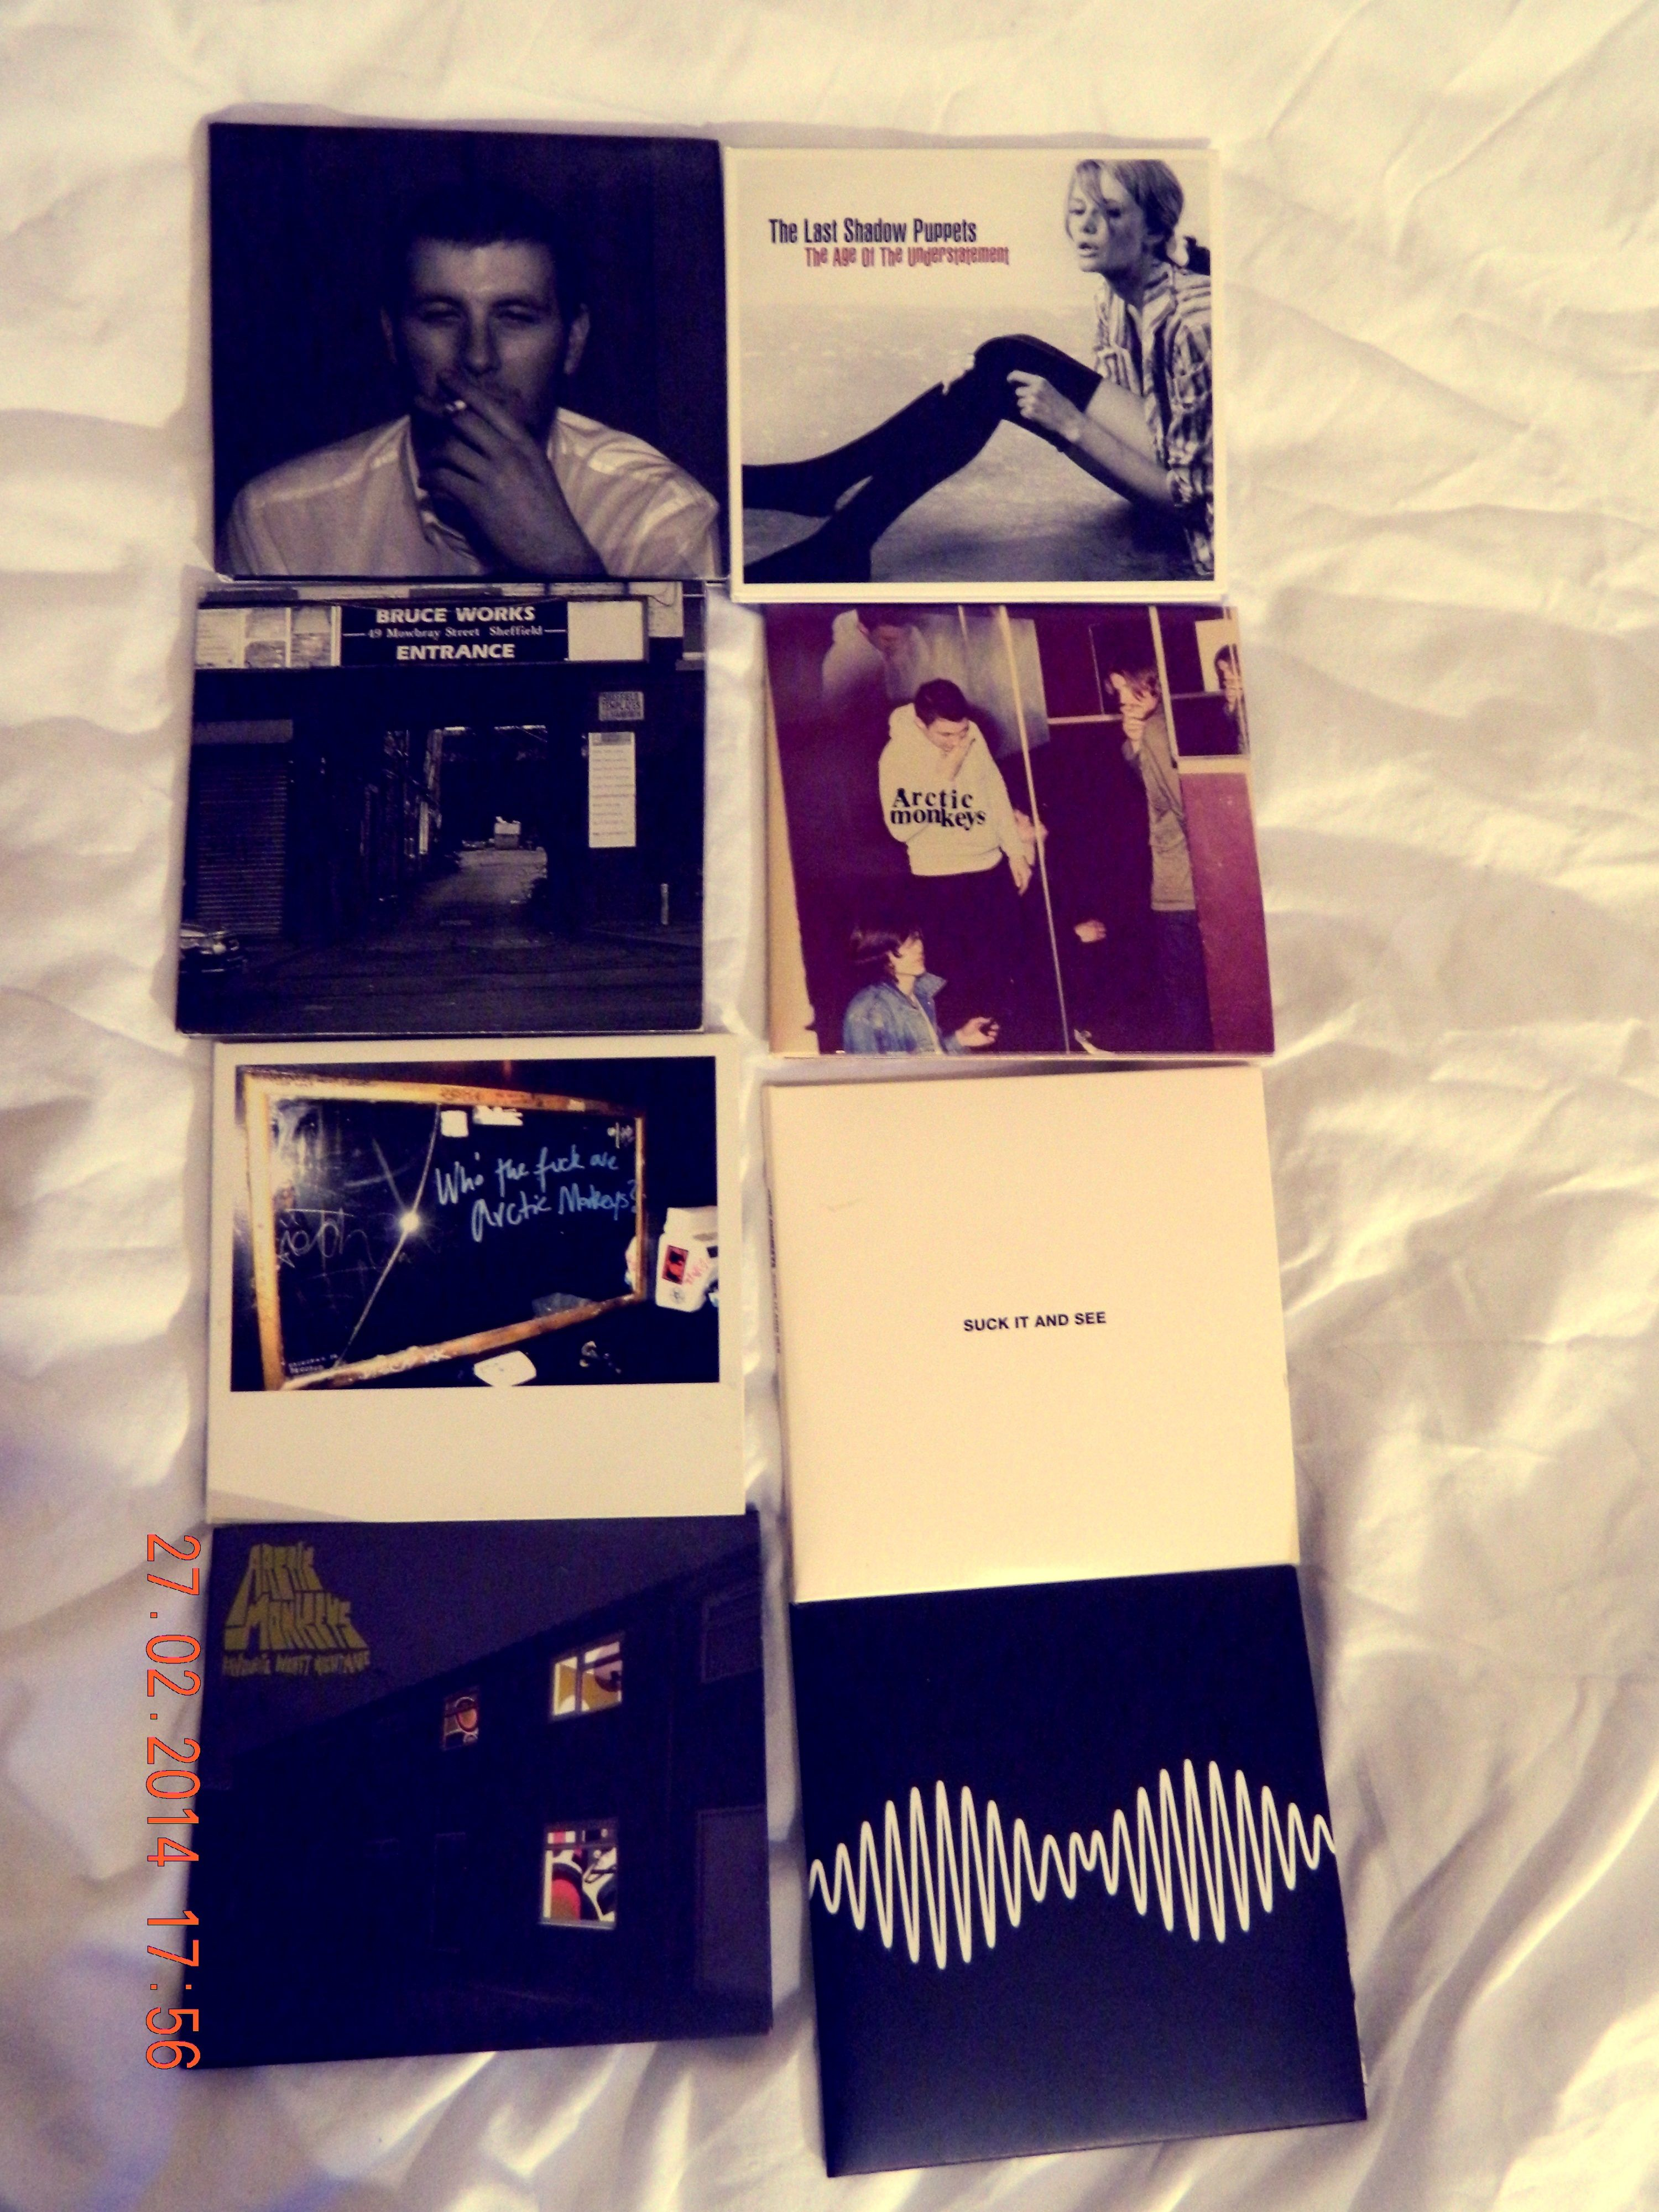 Arctic Monkeys And The Last Shadow Puppets The Last Shadow Puppets Arctic Monkeys Artic Monkeys